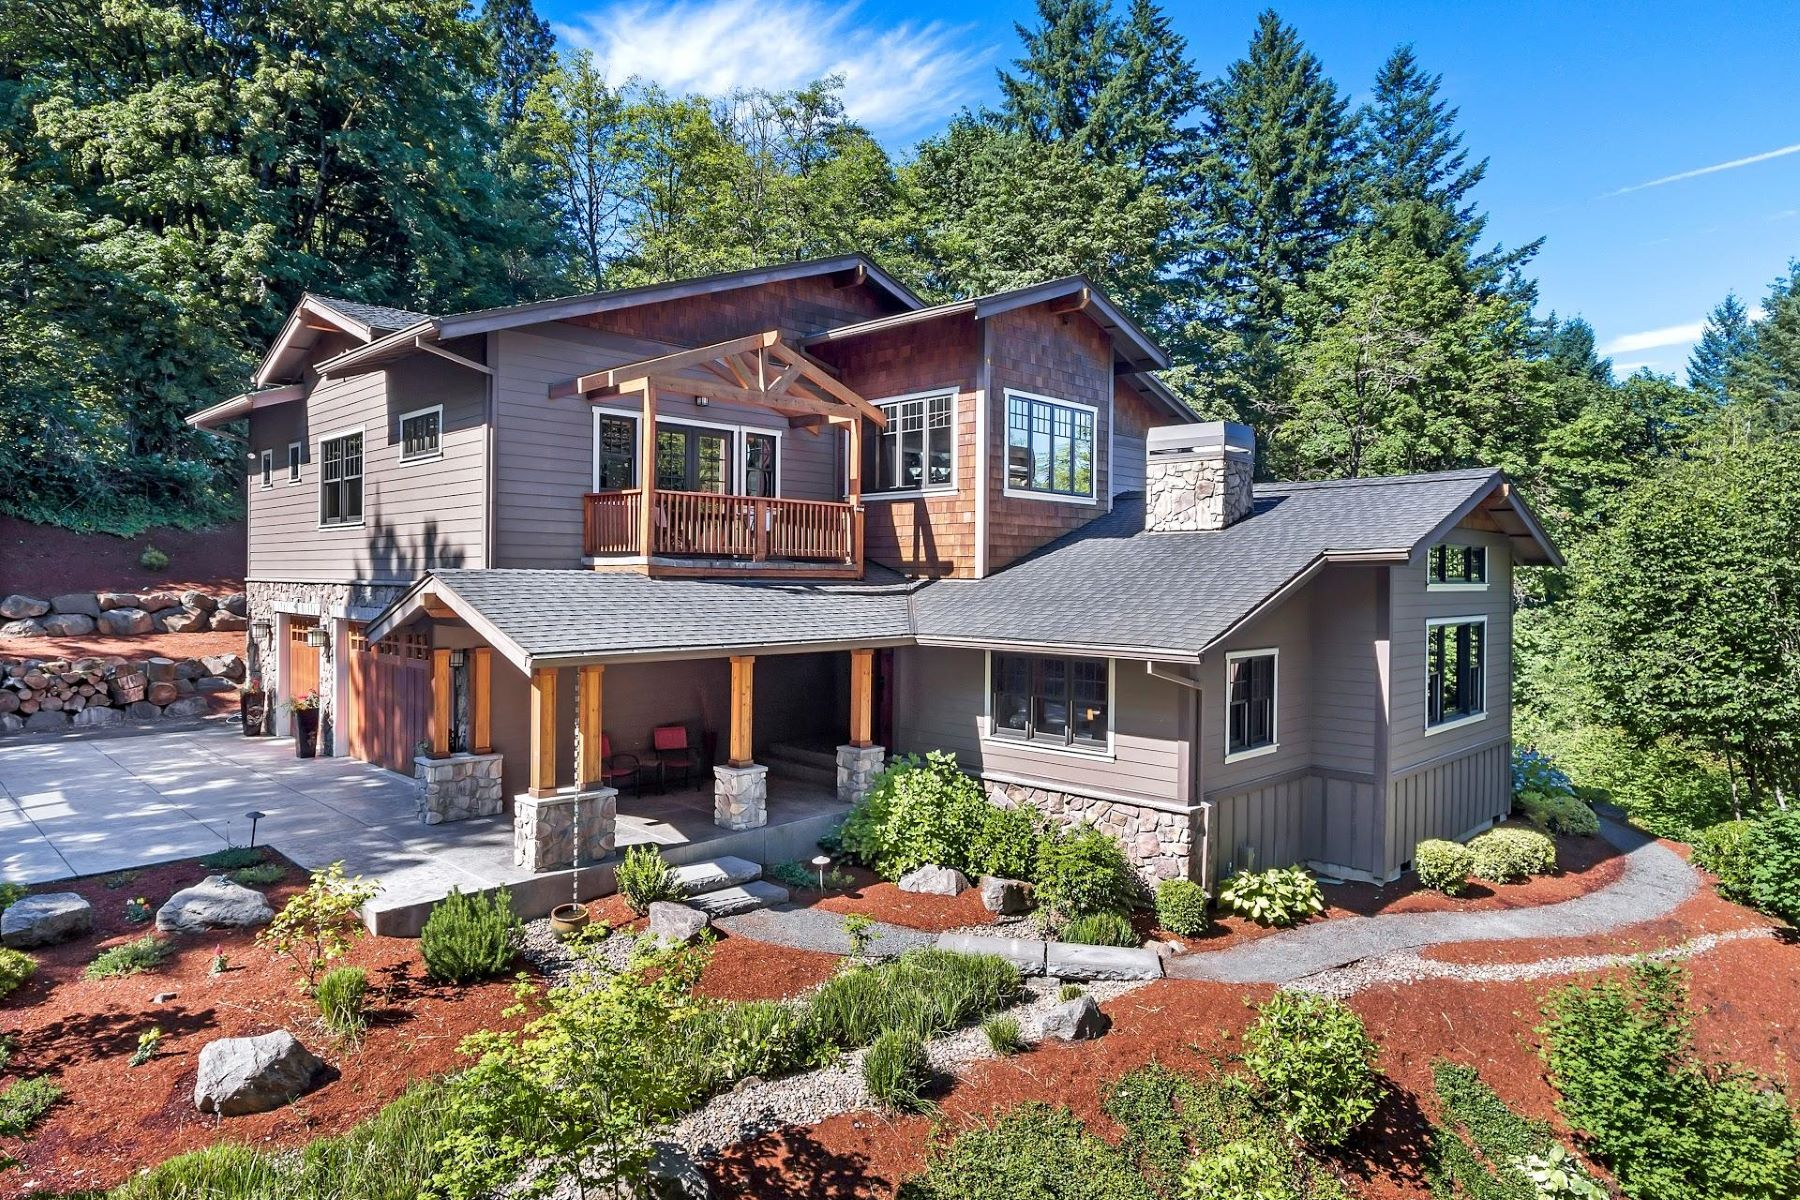 Single Family Homes for Active at 4450 W Burnside Road Portland, Oregon 97210 United States